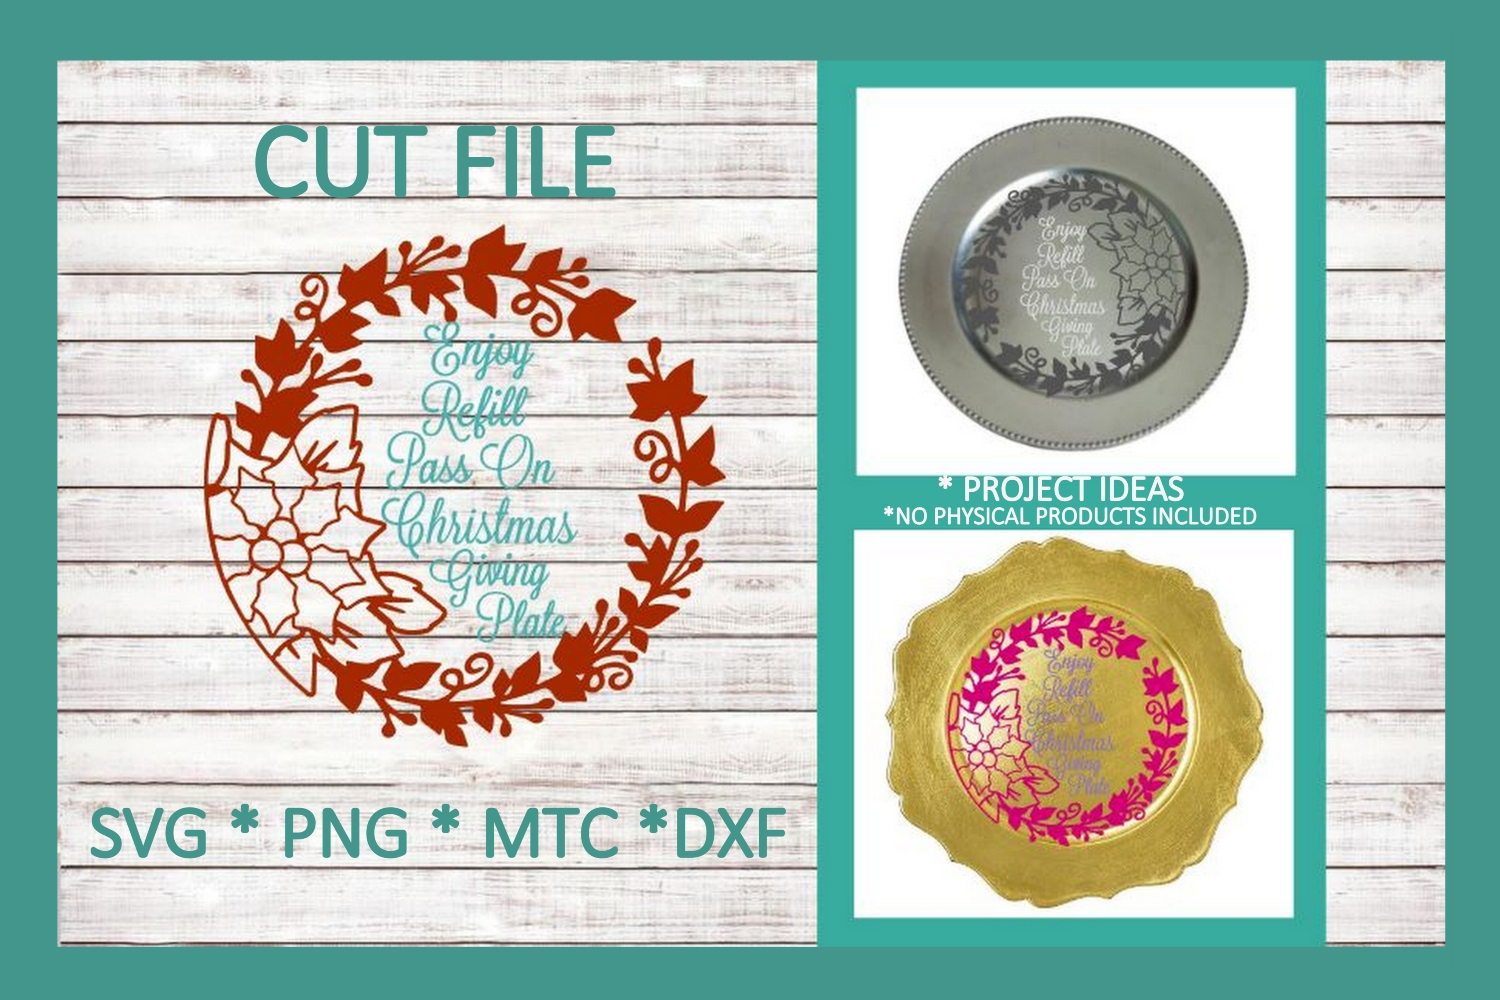 SVG Cut File Christmas Giving Plate Design #06 example image 1